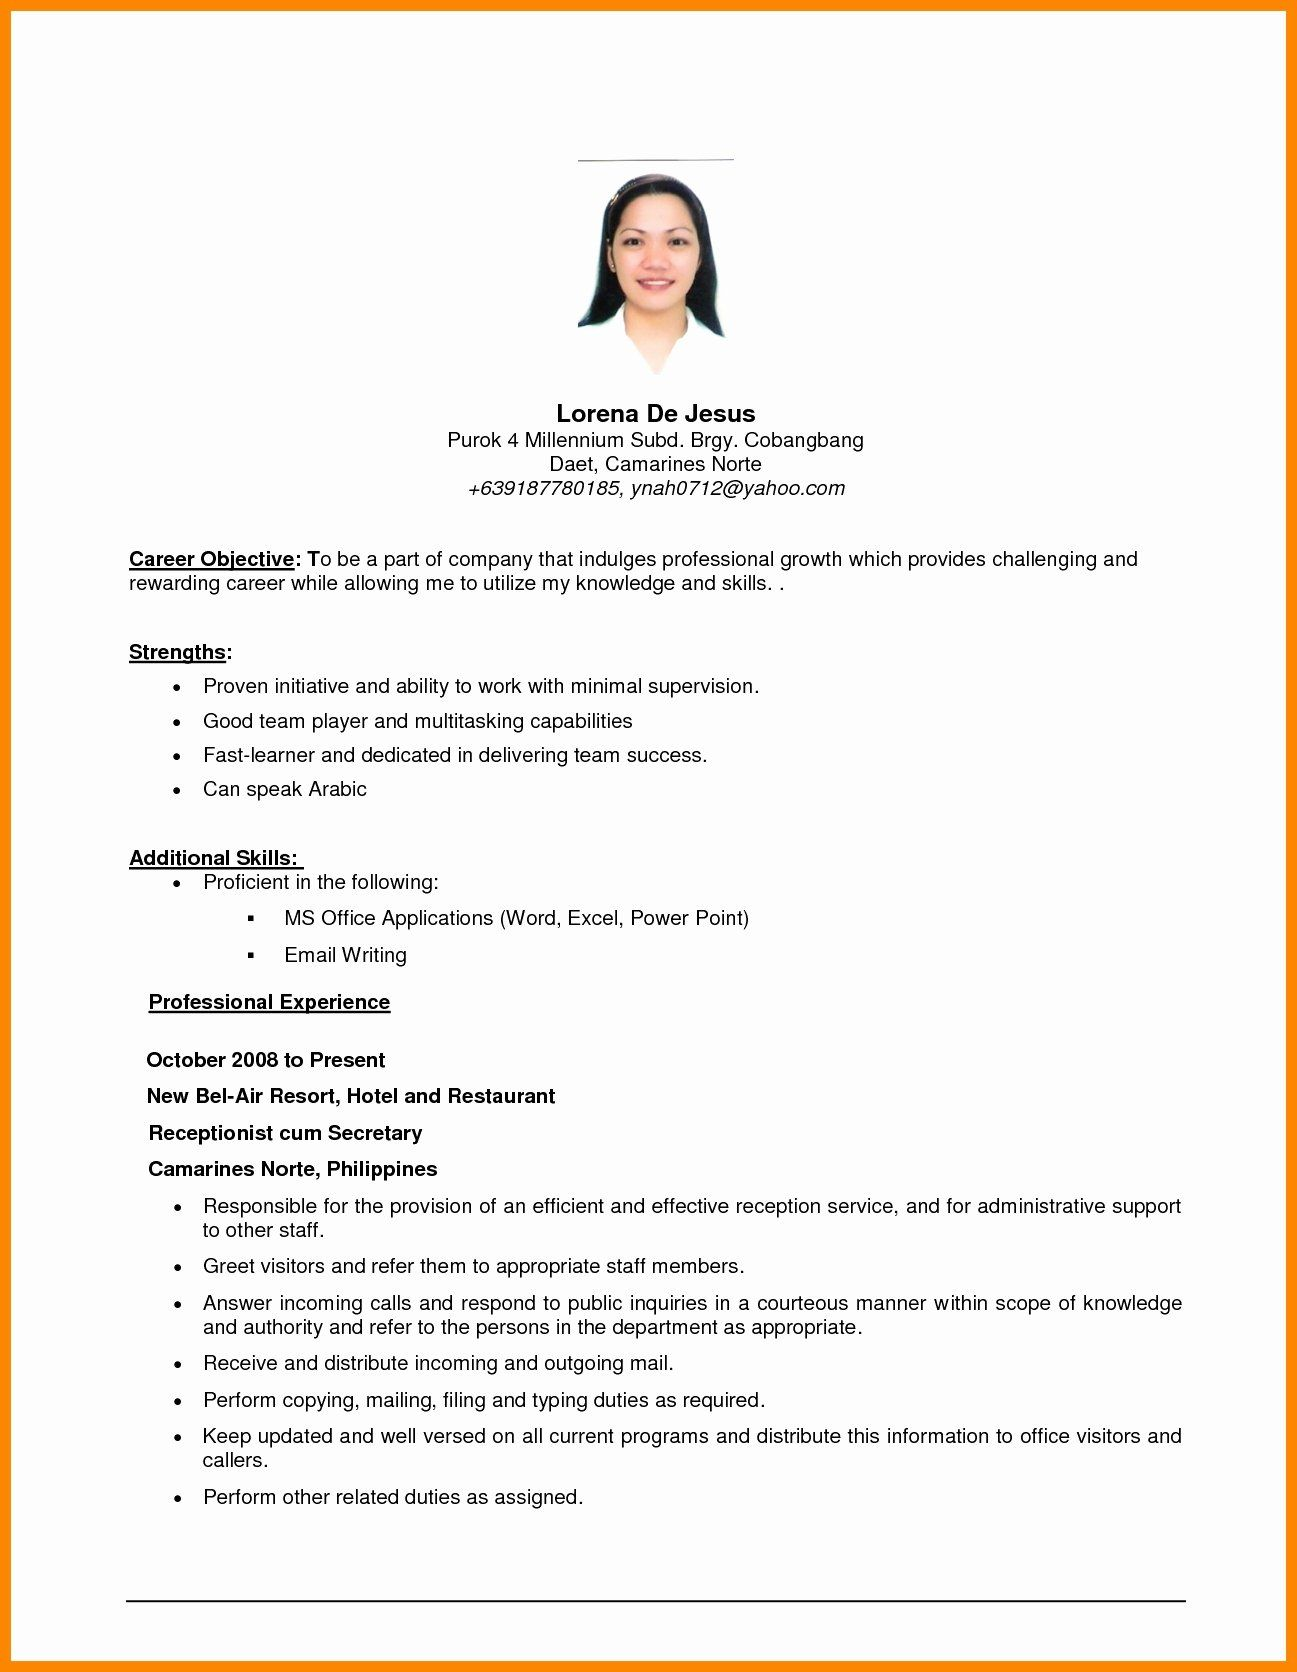 Generic Objective For Resume Inspirational General Resume Objective Examples Career Objectives For Resume Resume Objective Examples Job Resume Examples